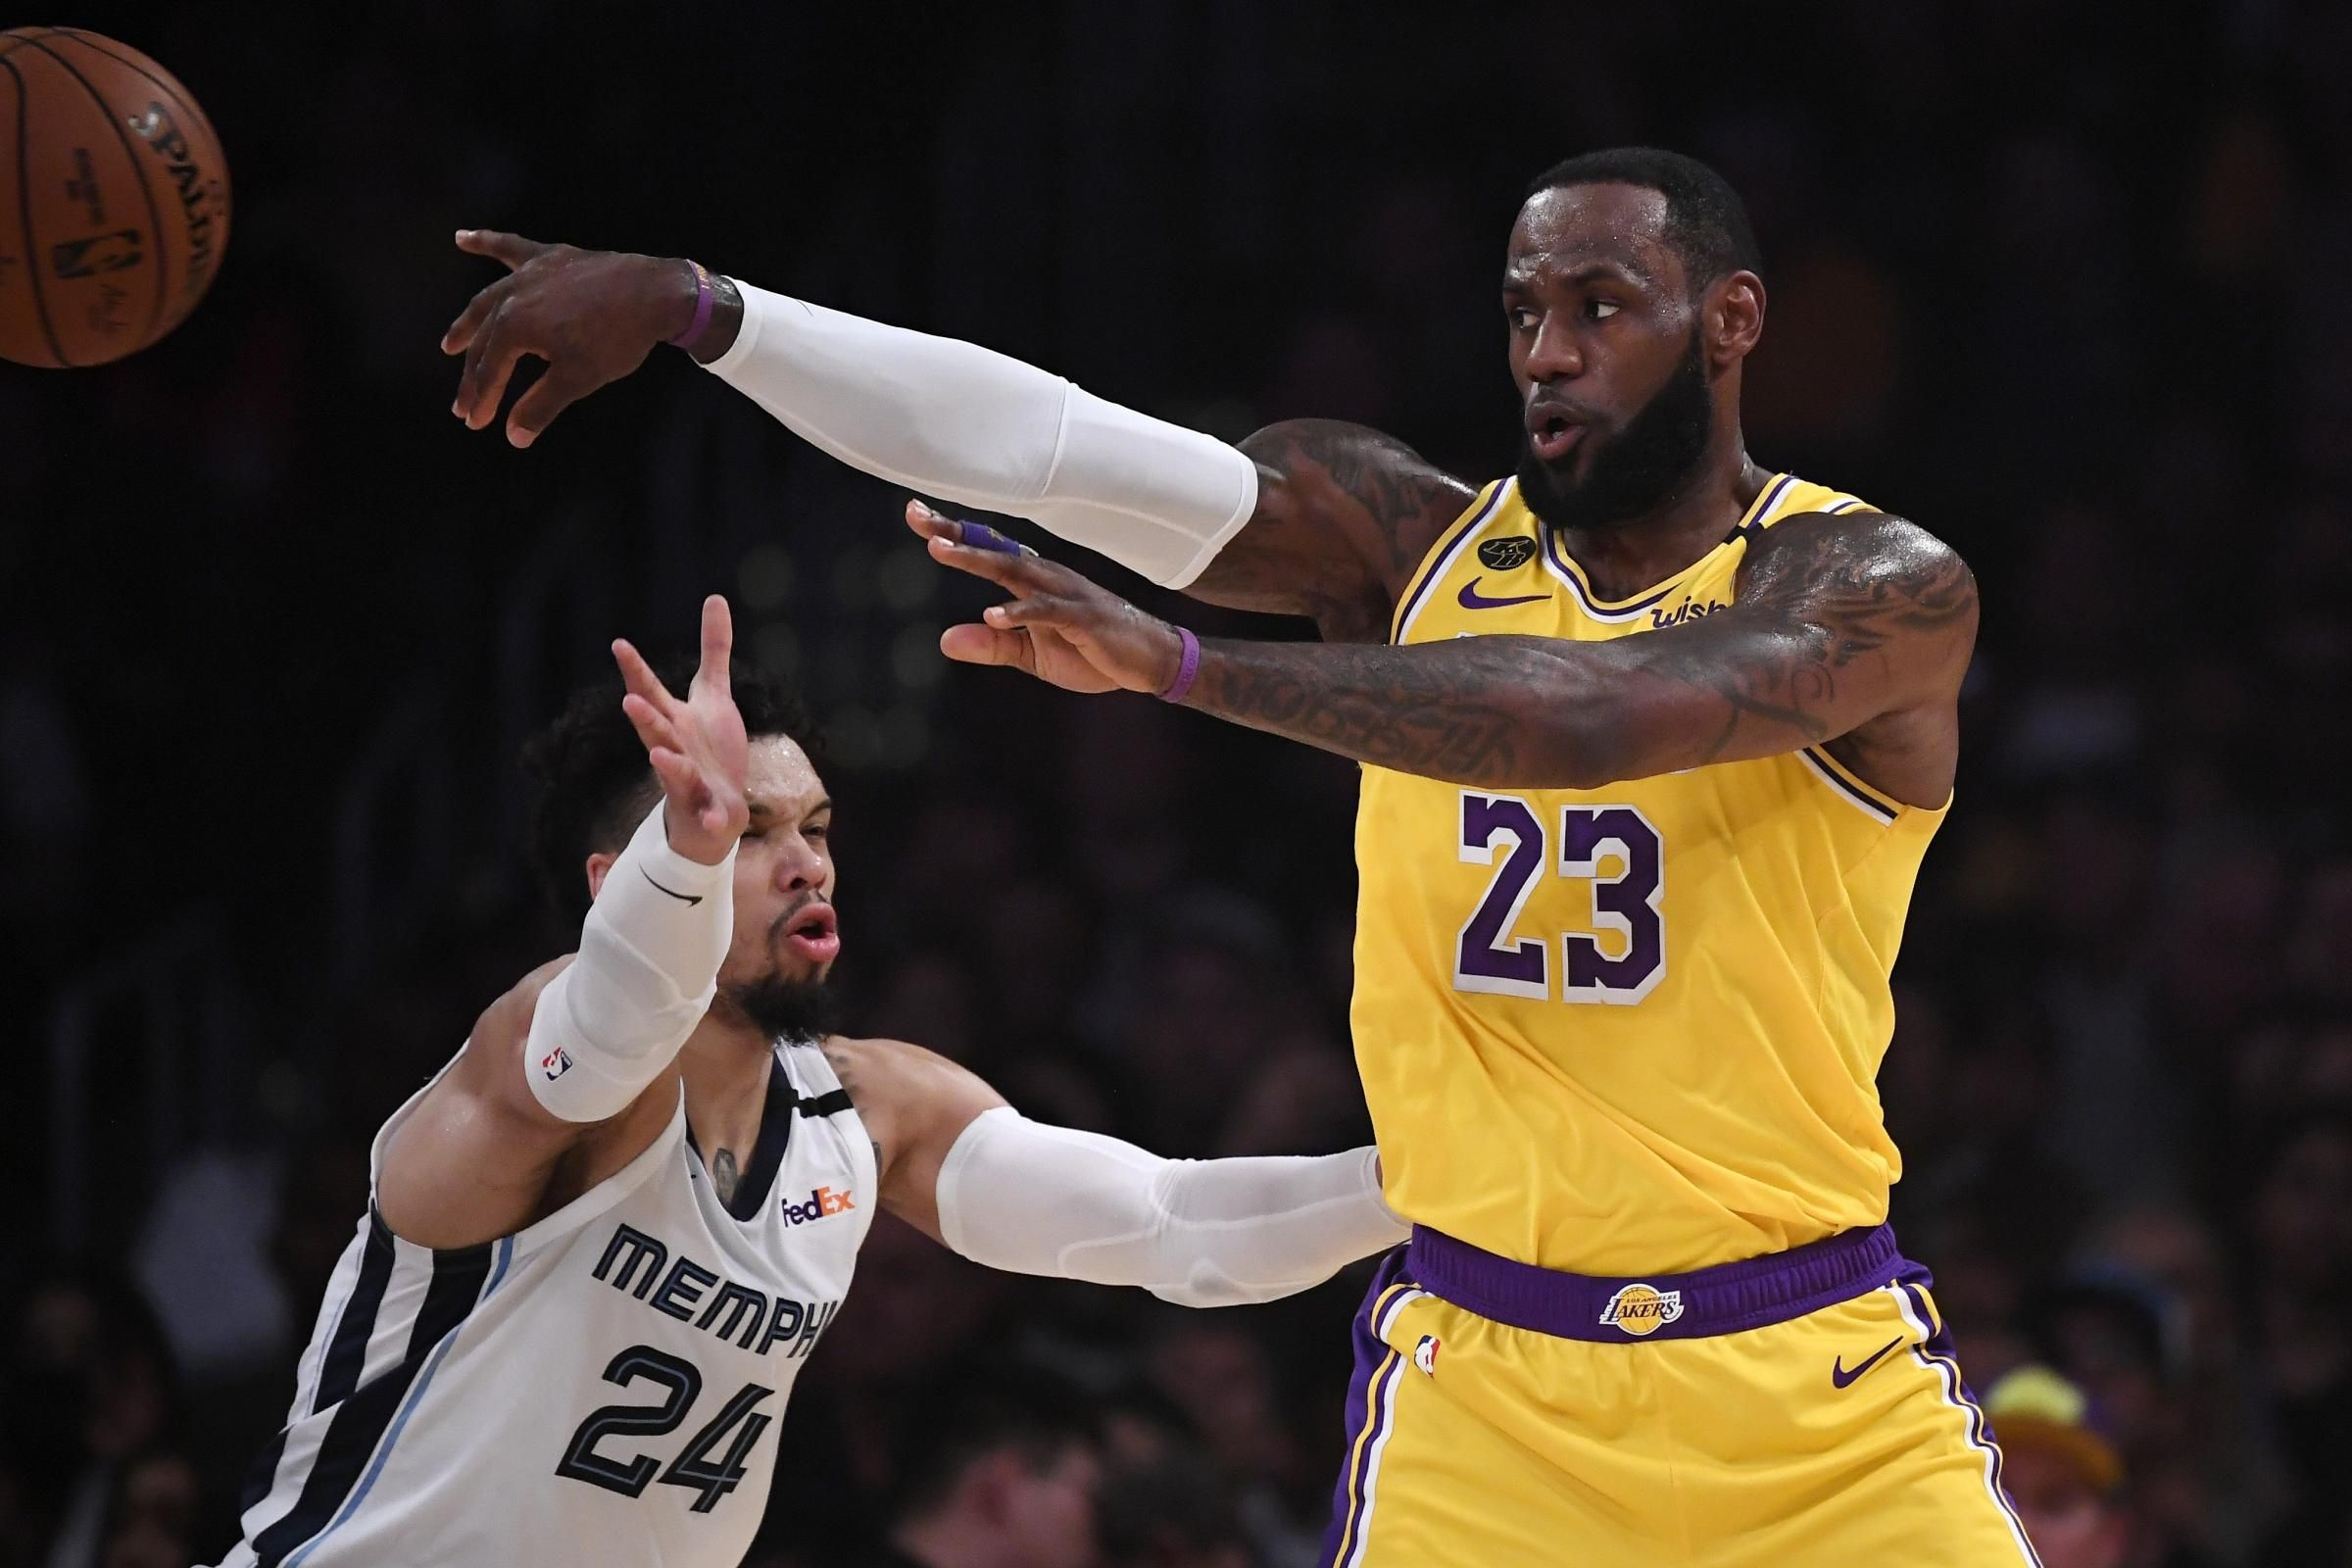 Lebron James Leads Lakers To Victory Over Grizzlies National Basketball Association News February 1 2020 10 50 Am February 1 In 2020 Anthony Davis Nba News Lakers